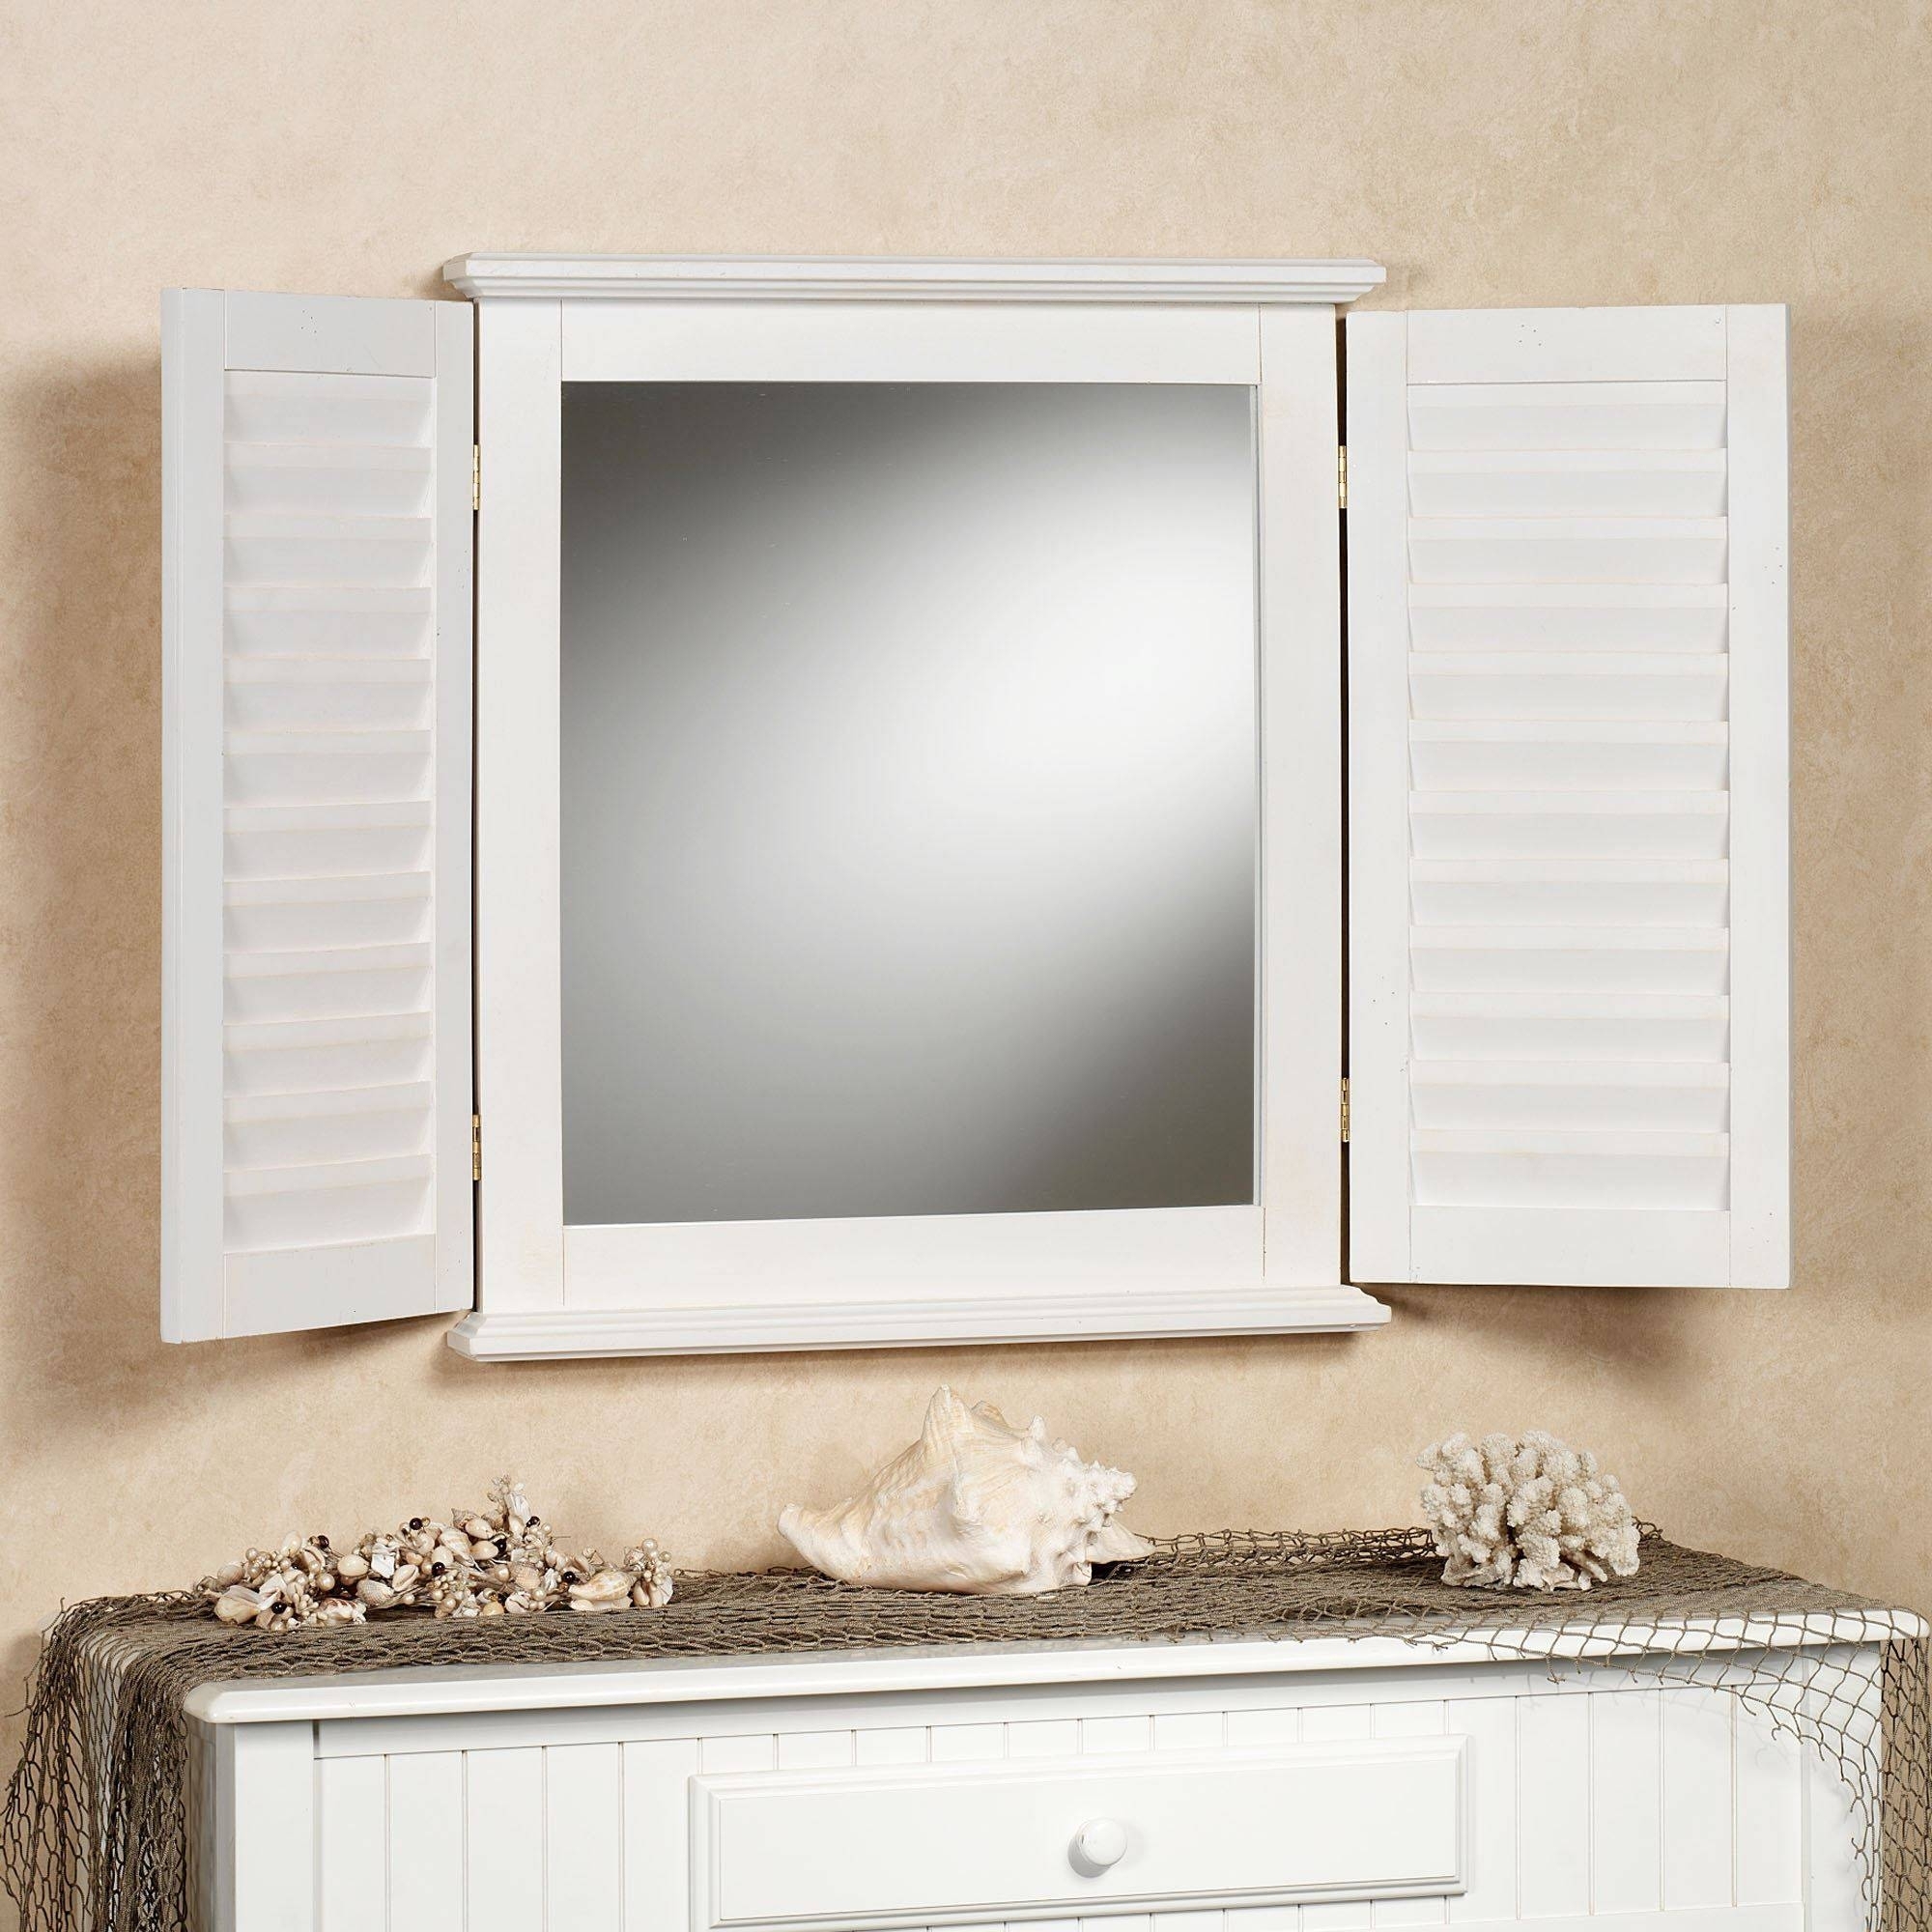 Coastal Shutter Wall Mirror intended for Window Shutter Mirrors (Image 7 of 15)